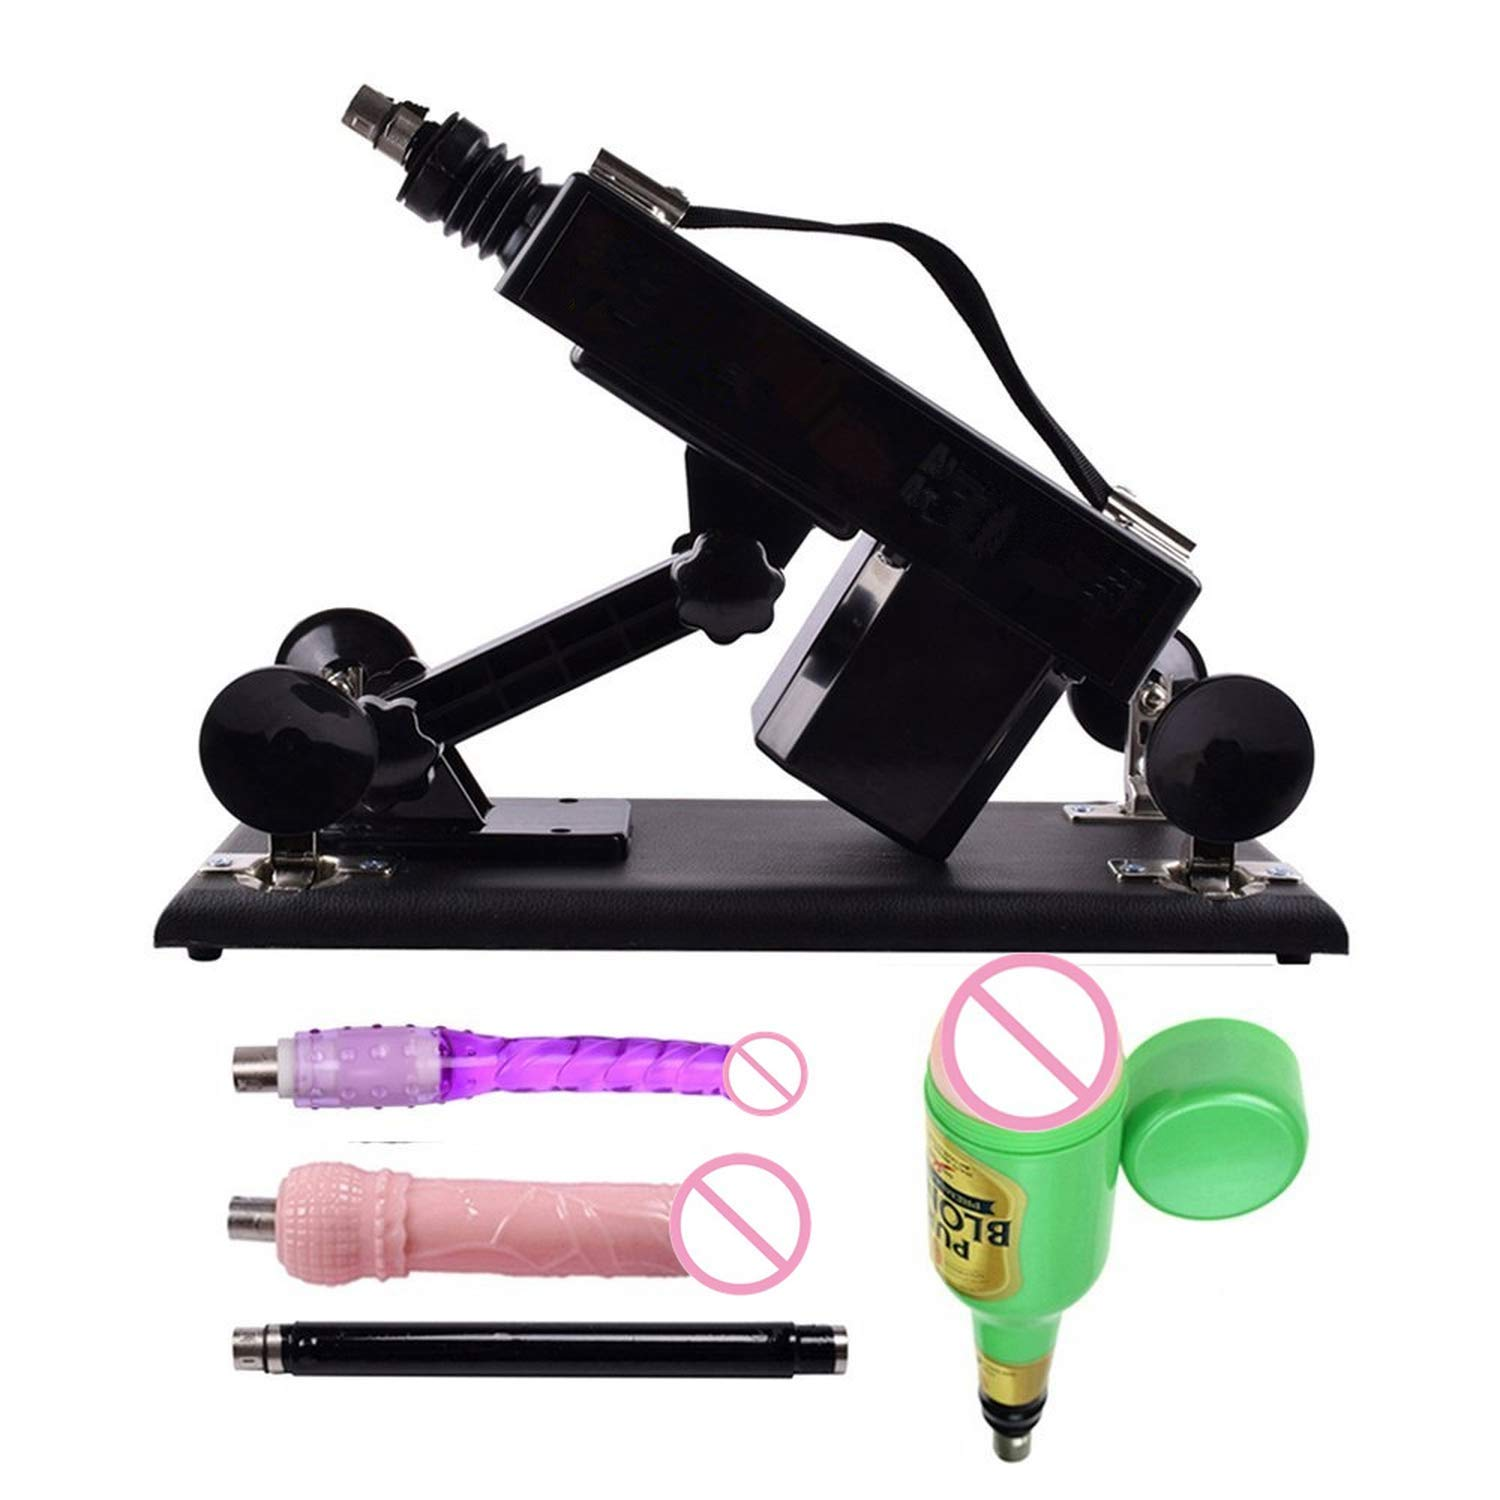 EFDCX tshirts Vibrater Women Sexxx Machine for Women and Men Masturbation Automatic Retractable Thrusting Speed Machine with Vagina Cup and P-Enis Adlut Sexxx Toy